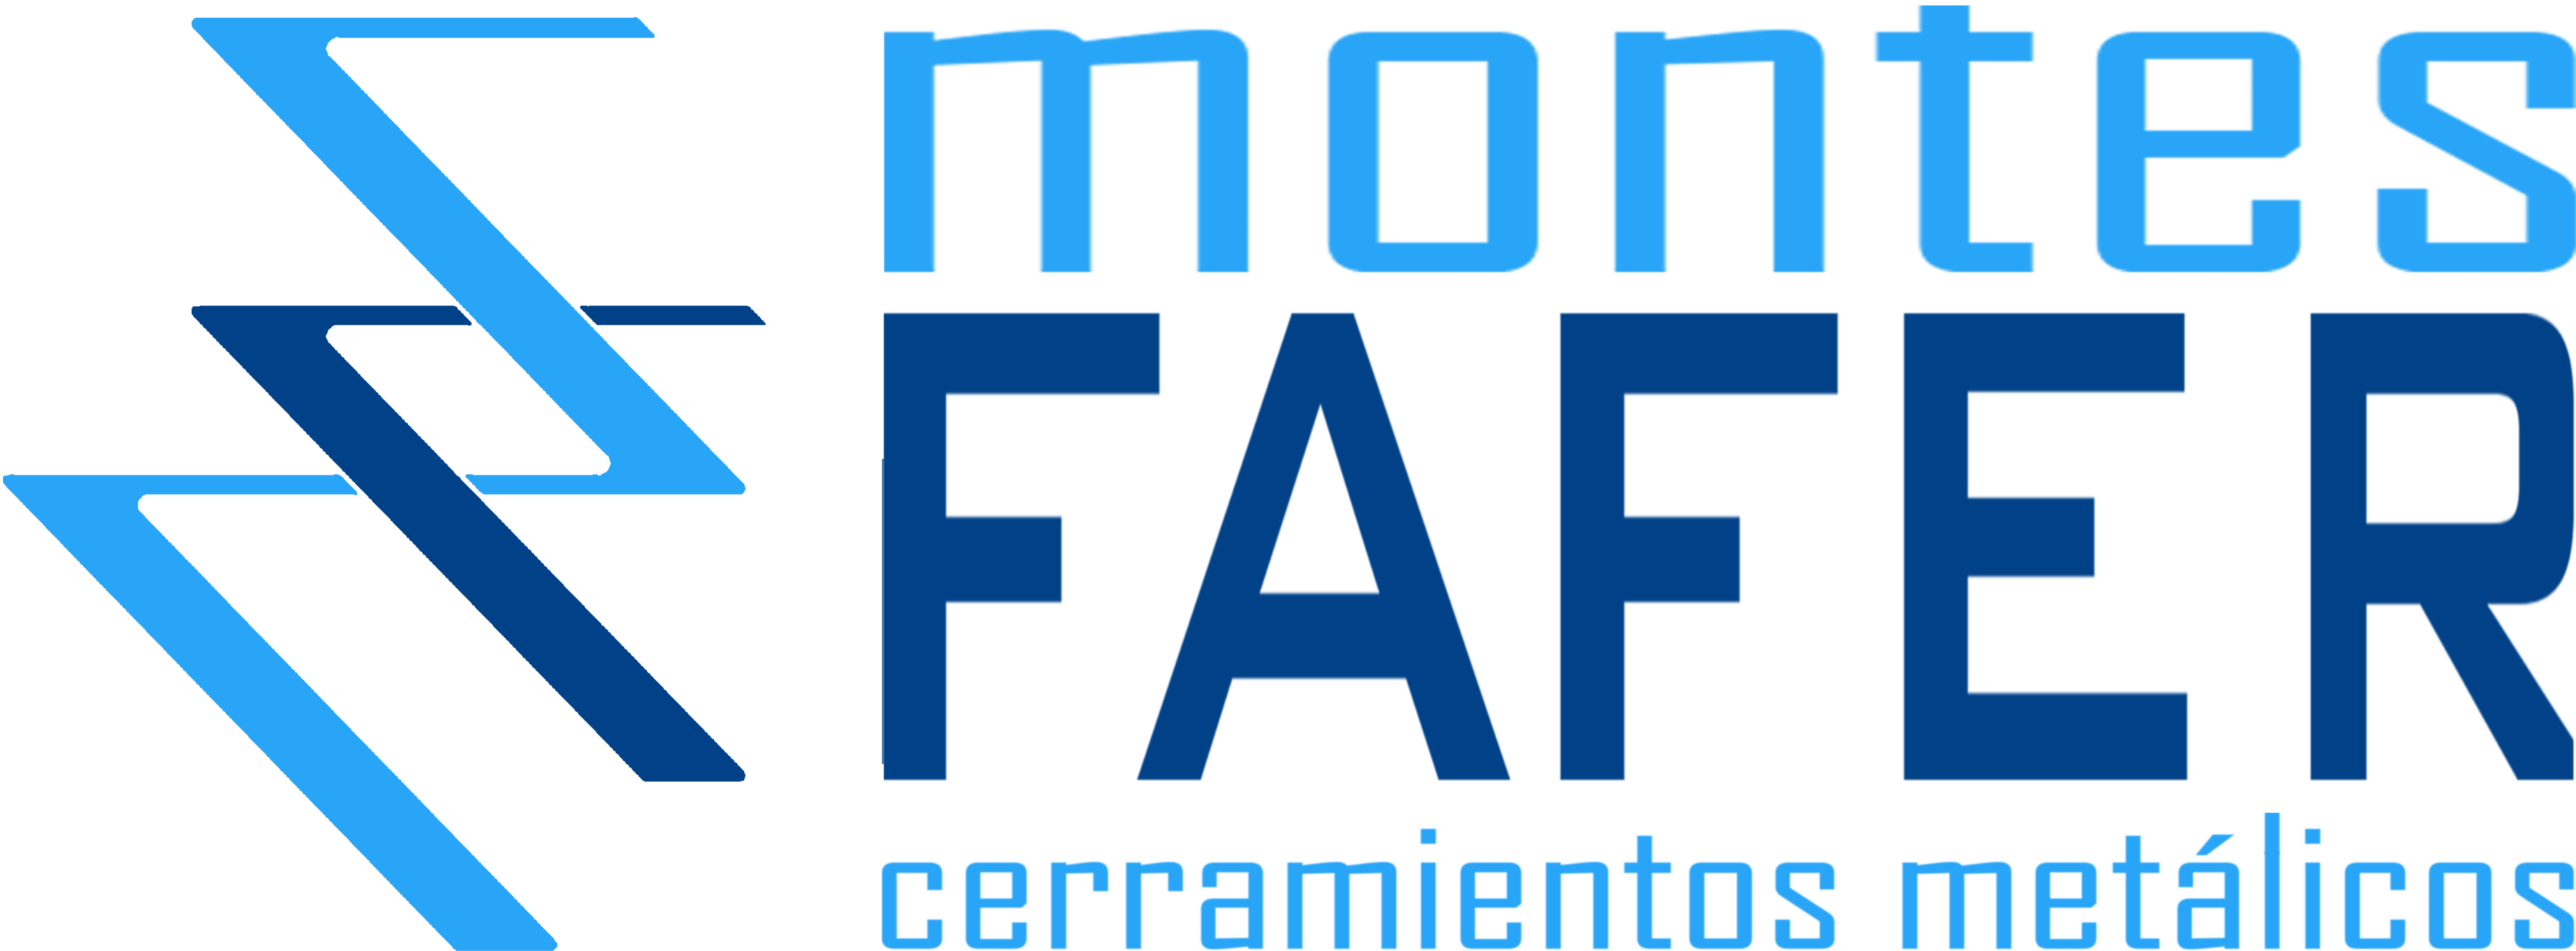 Montes Fafer S.L.